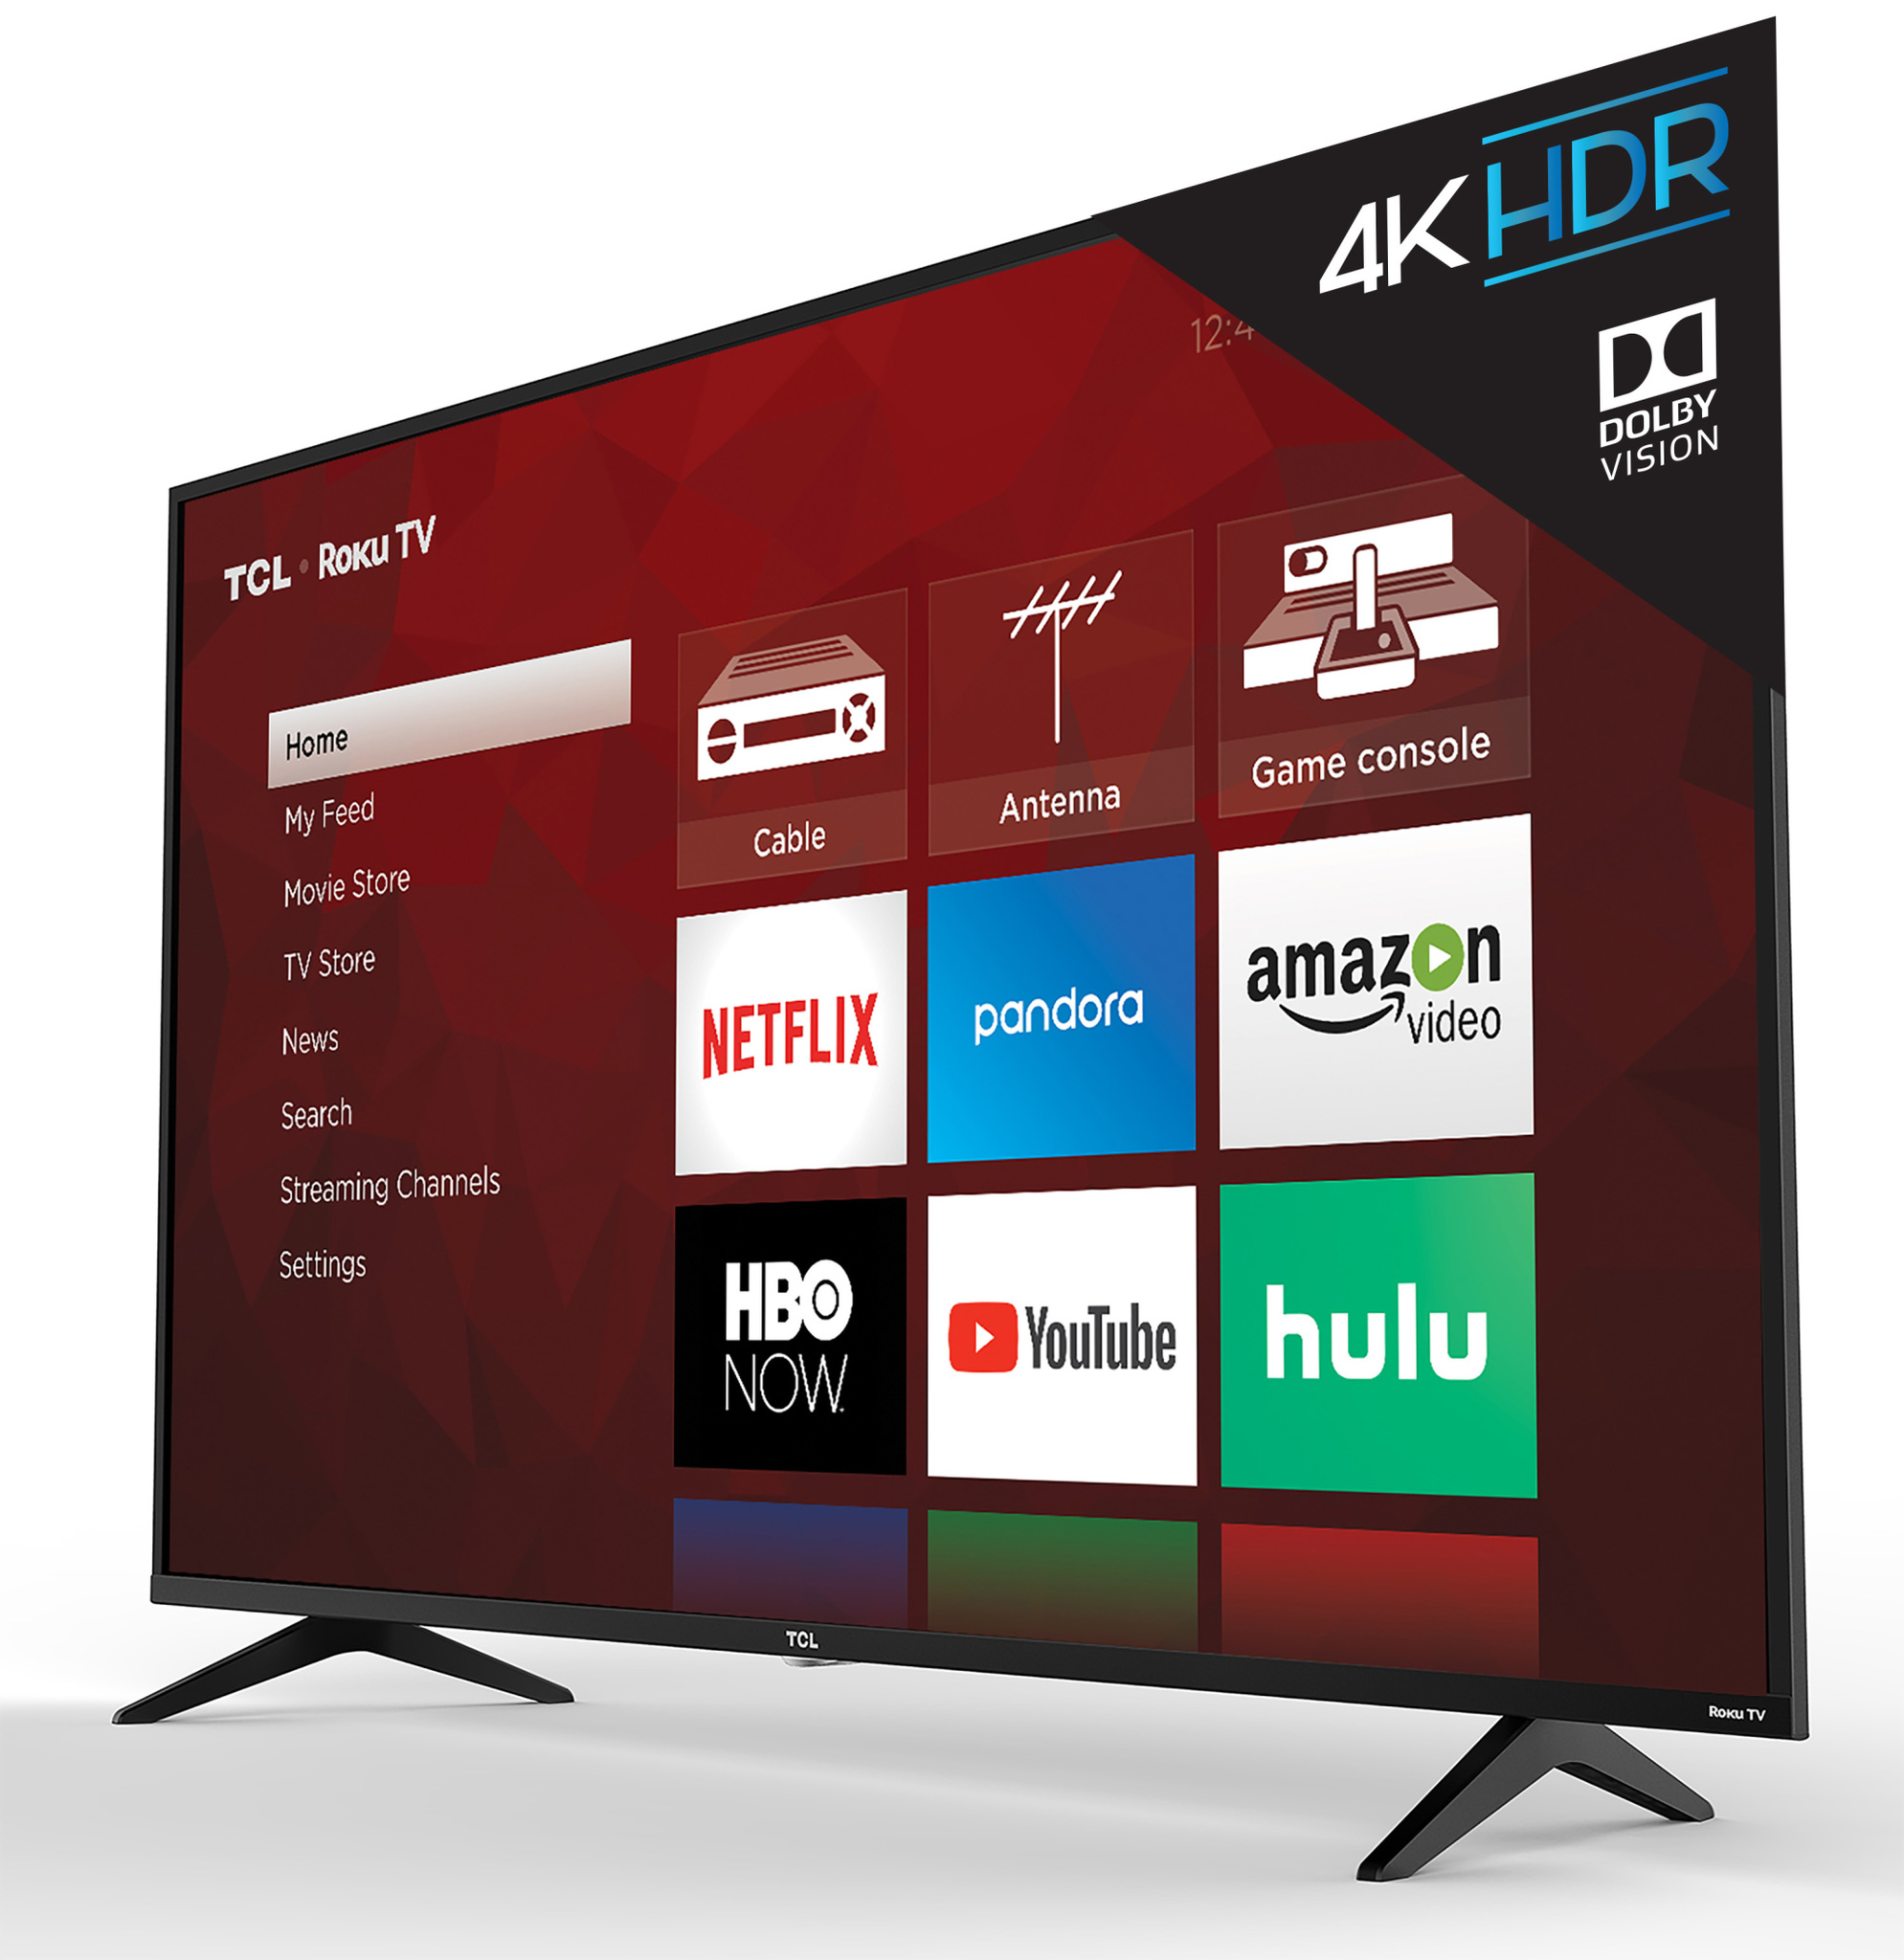 TCL\u0027s New 2018 5-Series Roku TVs With 4K Dolby Vision HDR Are Now On Sale